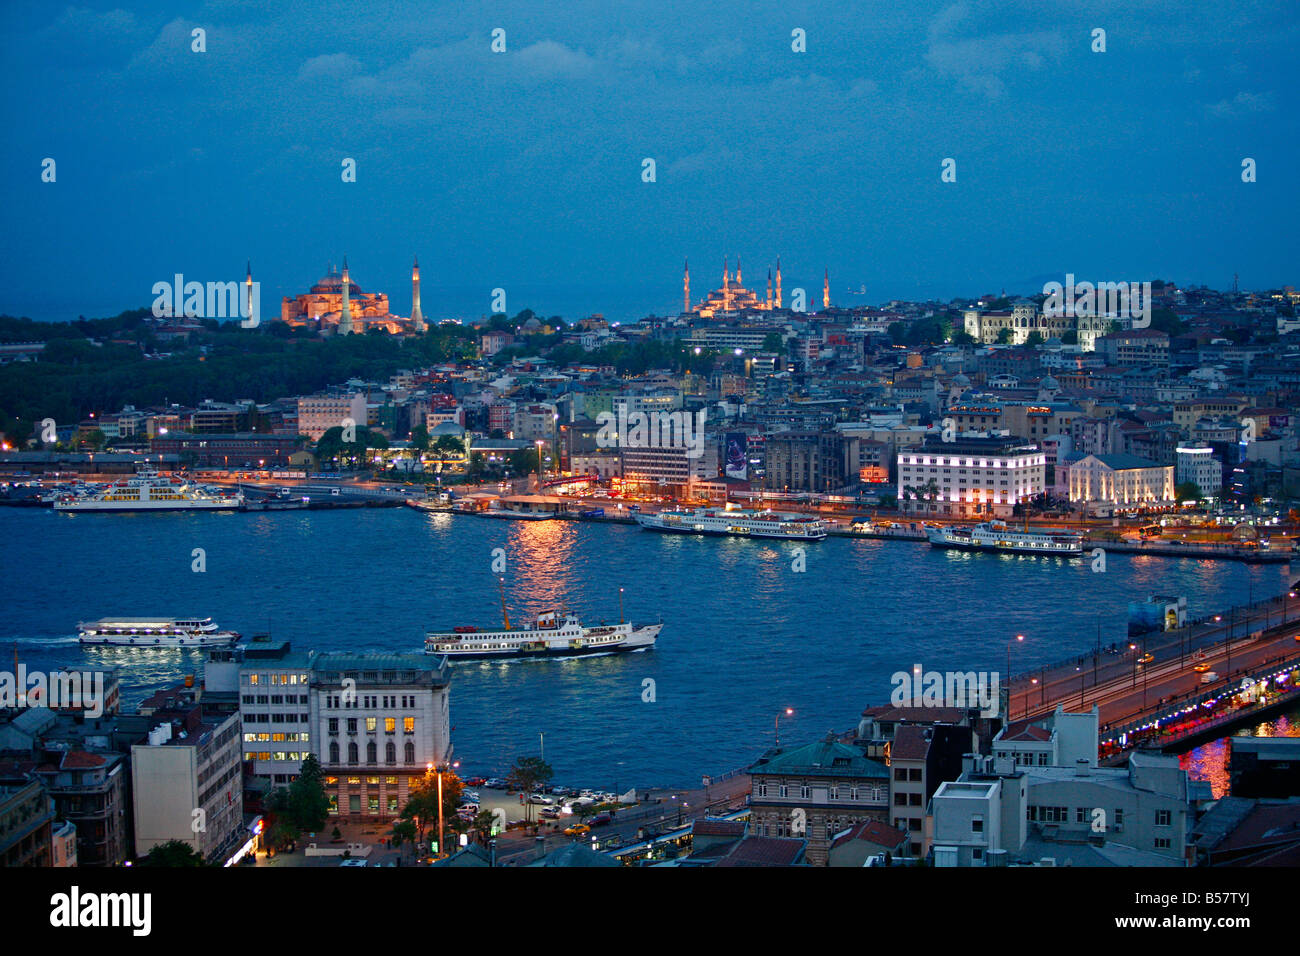 Skyline of Istanbul with a view over the Golden Horn and the Galata bridge, Istanbul, Turkey, Europe - Stock Image